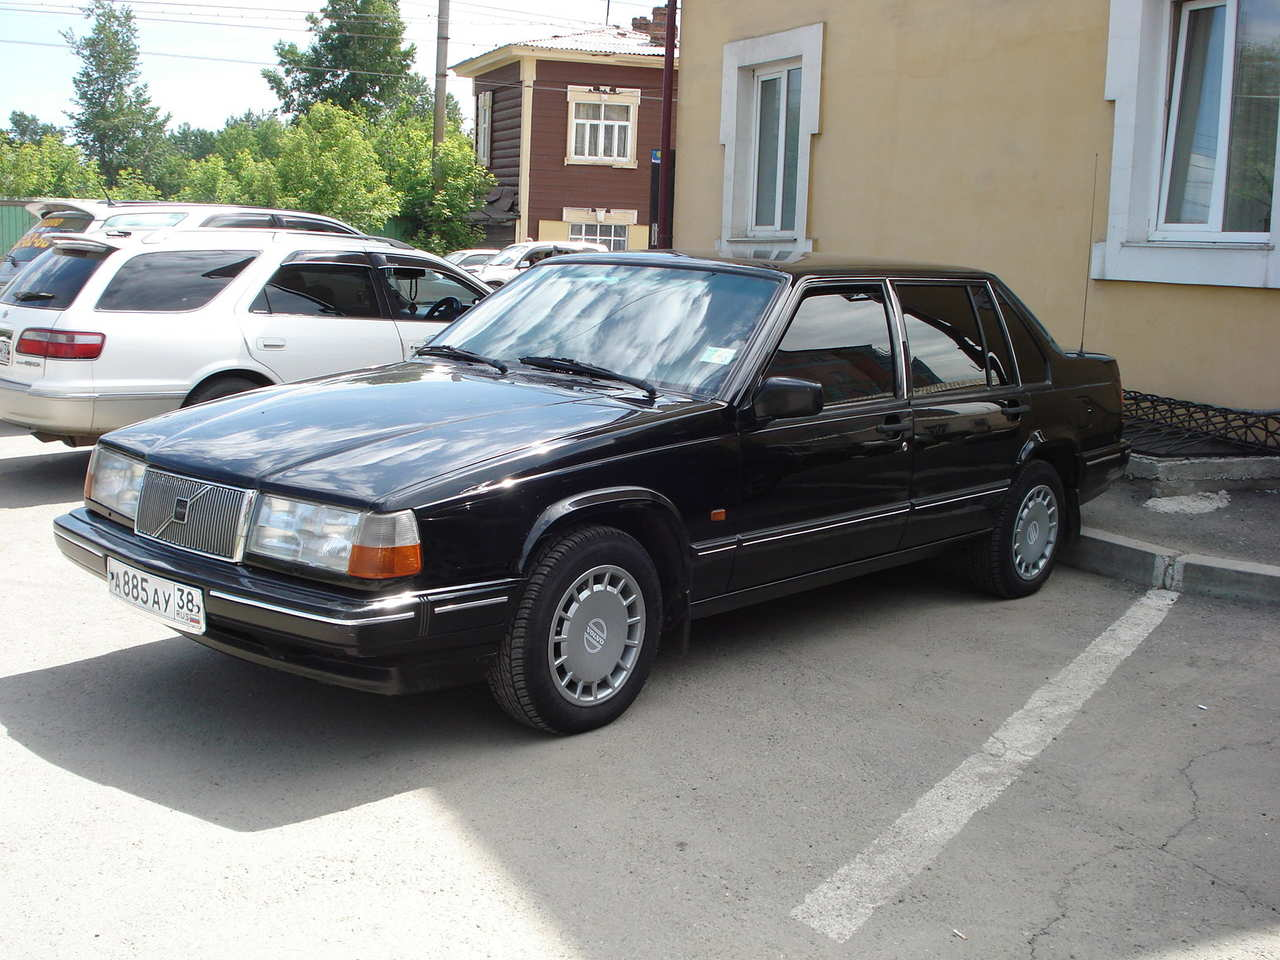 1993 volvo 940 pictures 2300cc gasoline fr or rr manual for sale rh cars directory net 1993 Volvo 940 MPG 1993 Volvo 240